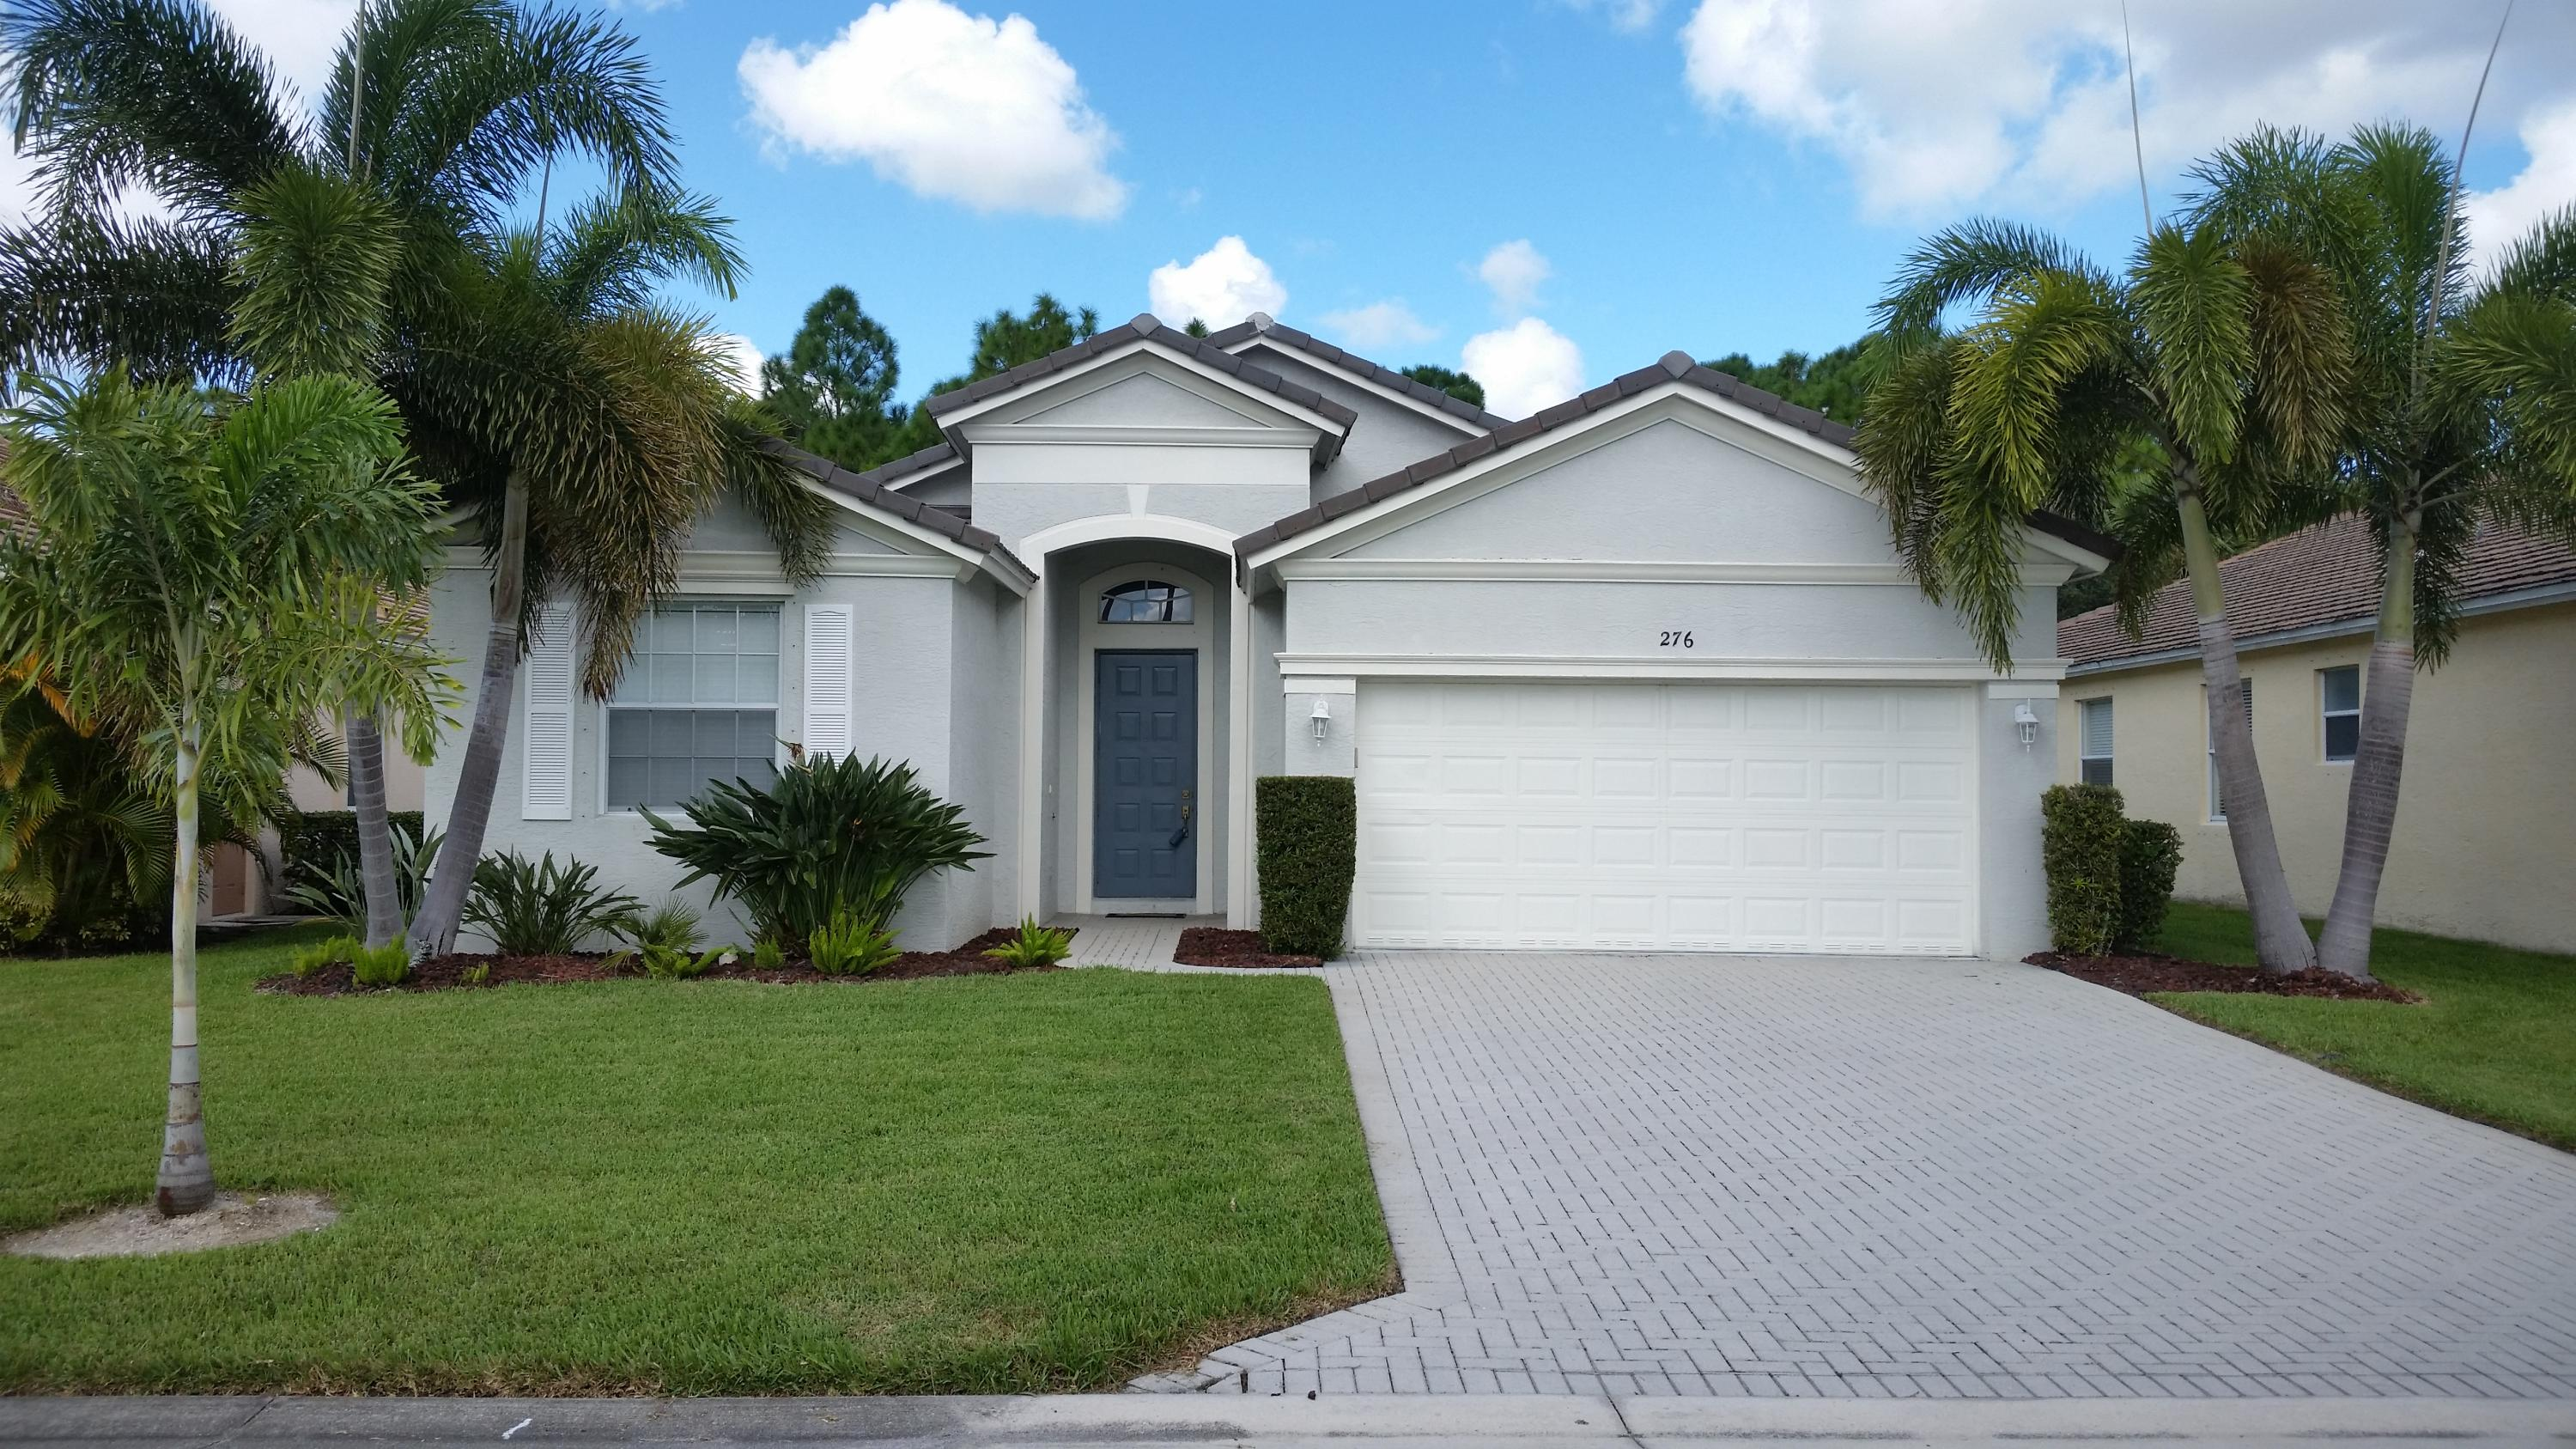 LAKEFOREST AT ST LUCIE WEST PHASE 1 REAL ESTATE